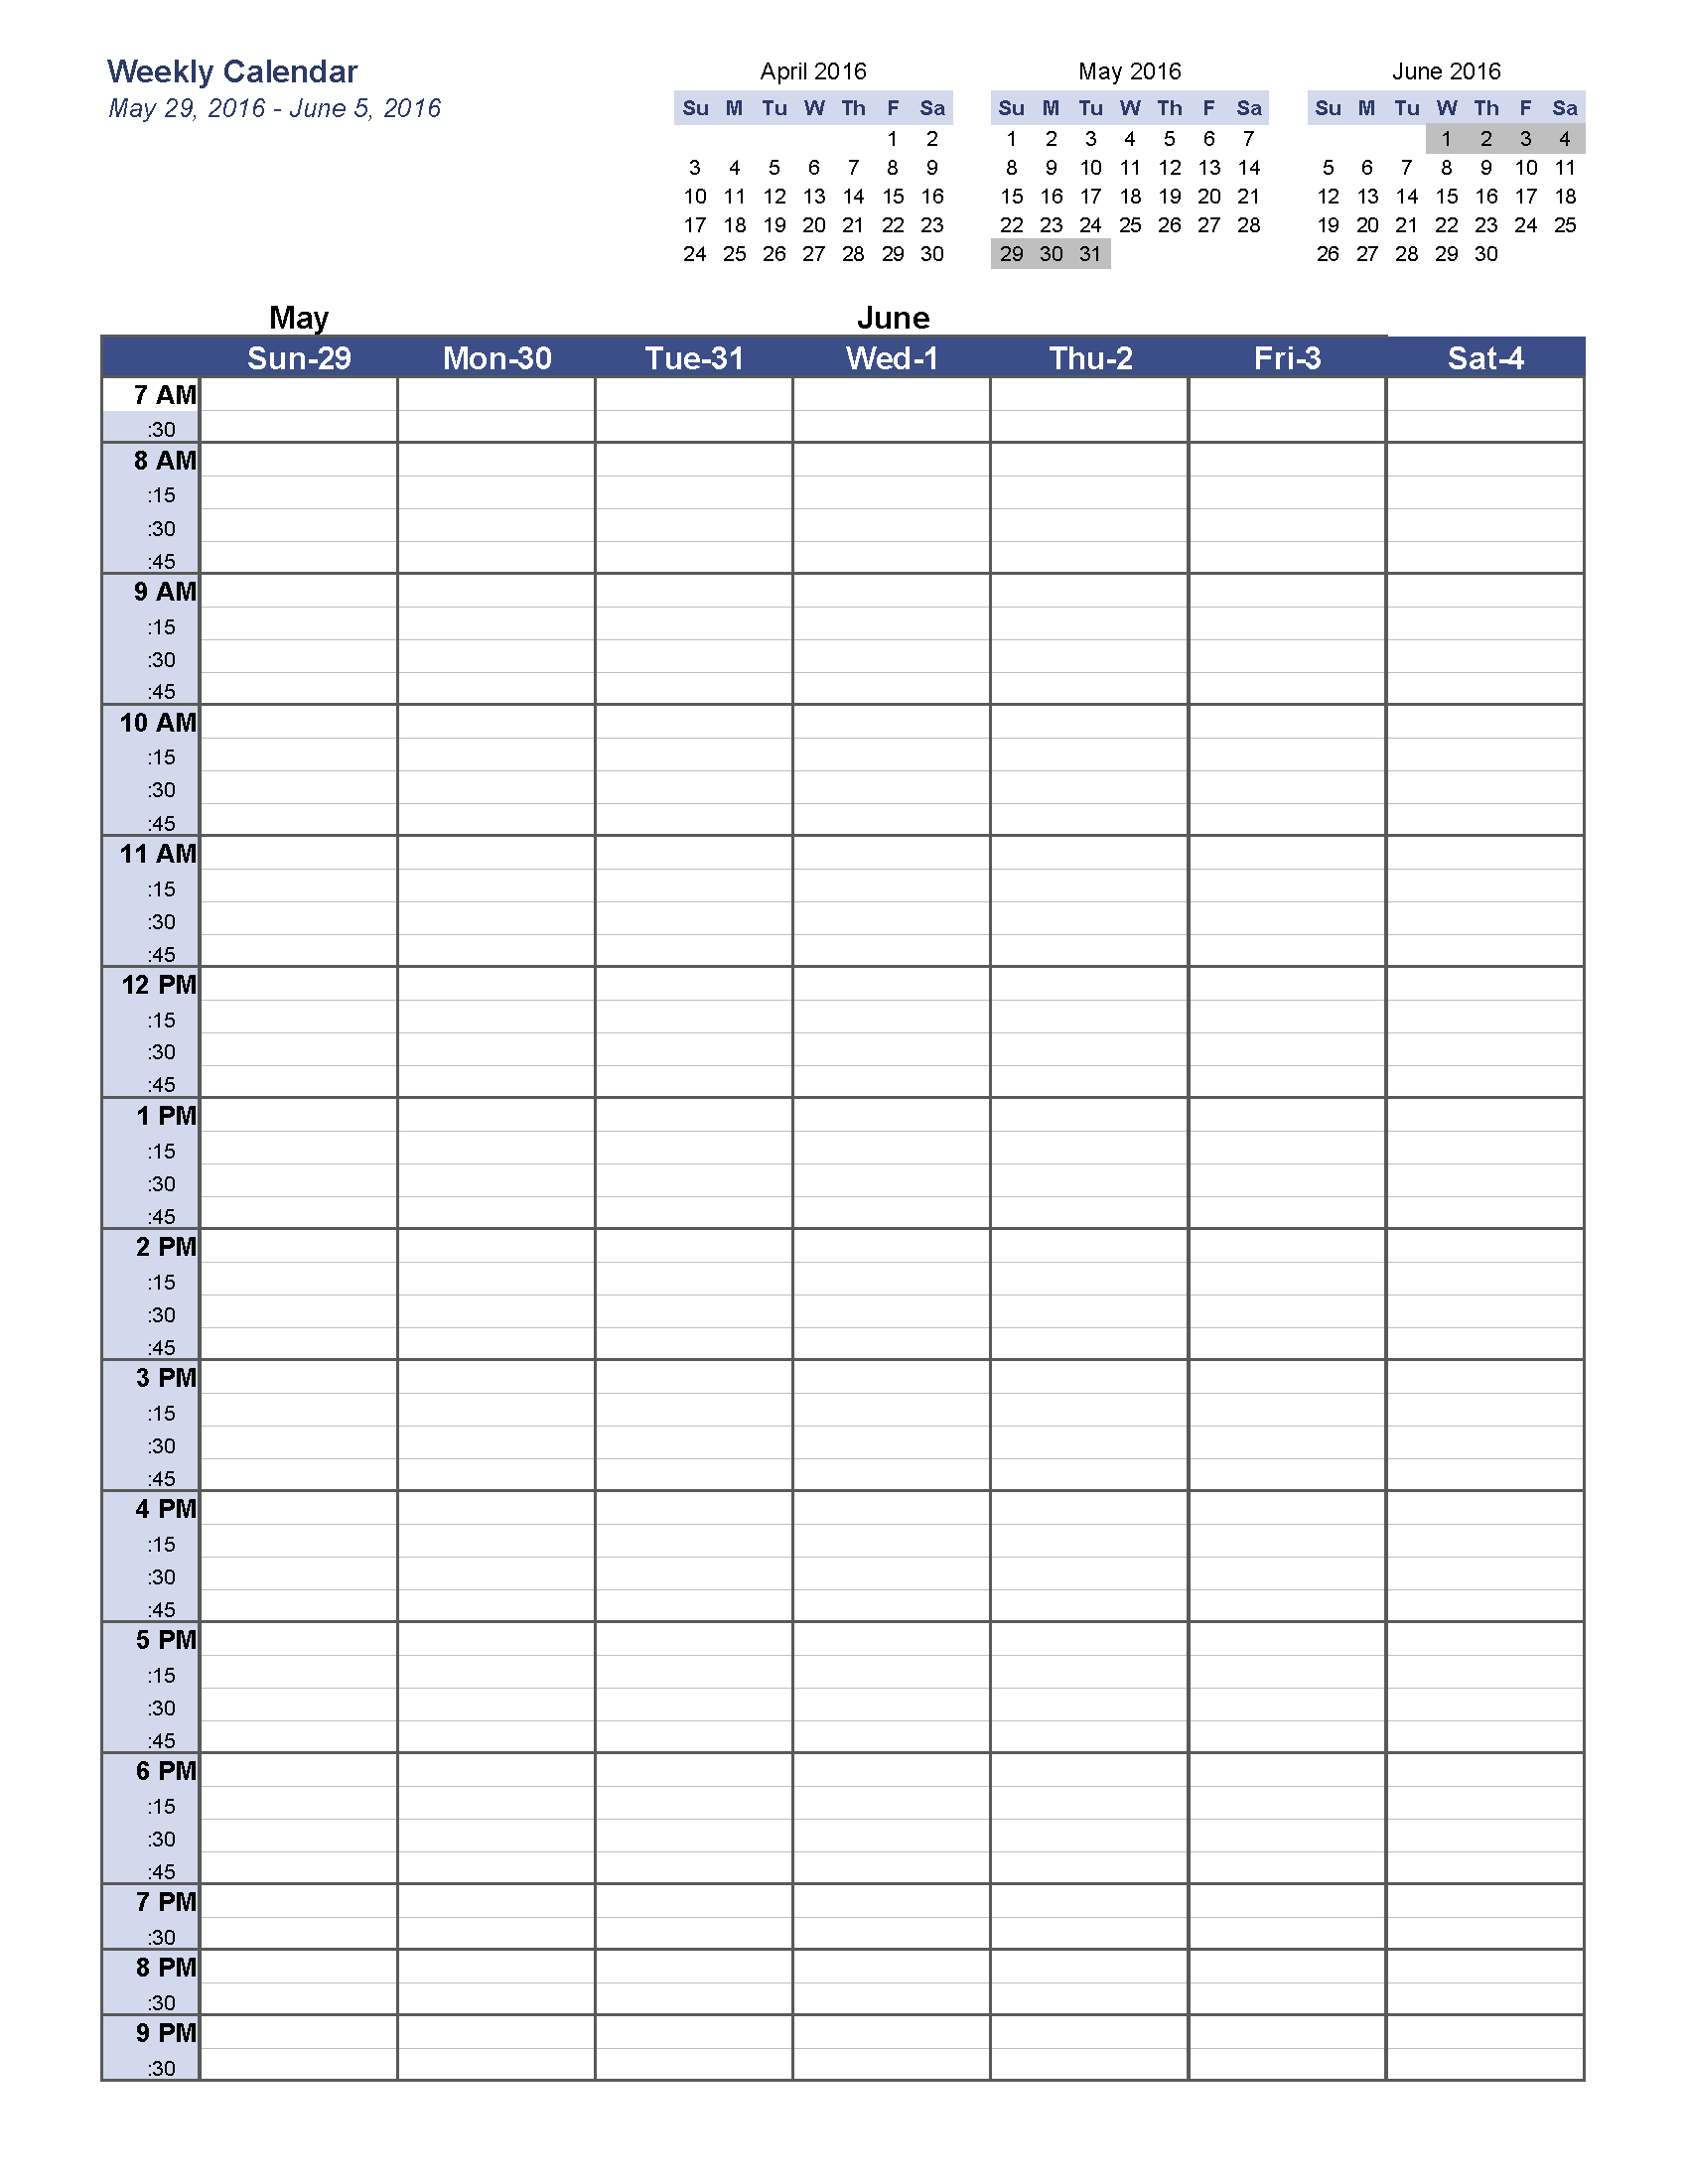 Calendar, May 2016 Weekly Blank Templates, May 2016 Weekly Calendar ...